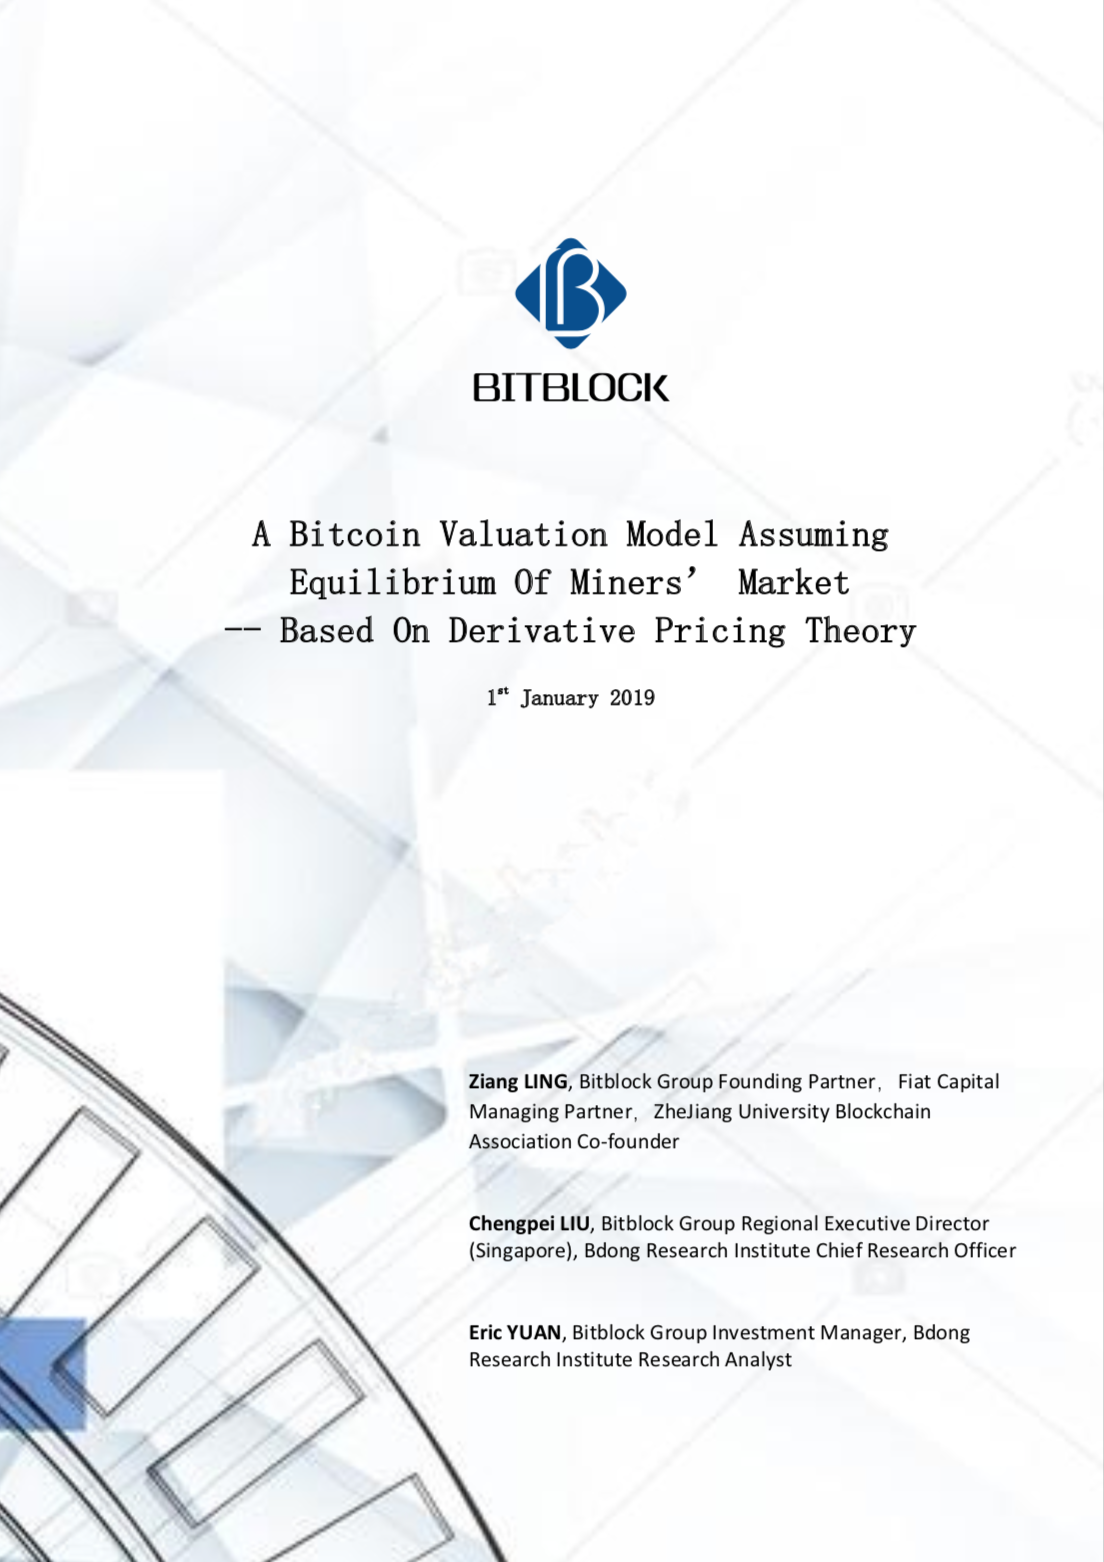 A research paper themed on A Bitcoin Valuation Model Assuming Equilibrium Of Miners' Market — Based On Derivative Pricing Theory, written by Ziang Ling, the Founding Partner of Bitblock Group and Managing Partner of Fiat Capital, along with his research team. This paper shows a fairly advanced quantitative valuation model in the cryptocurrency field.